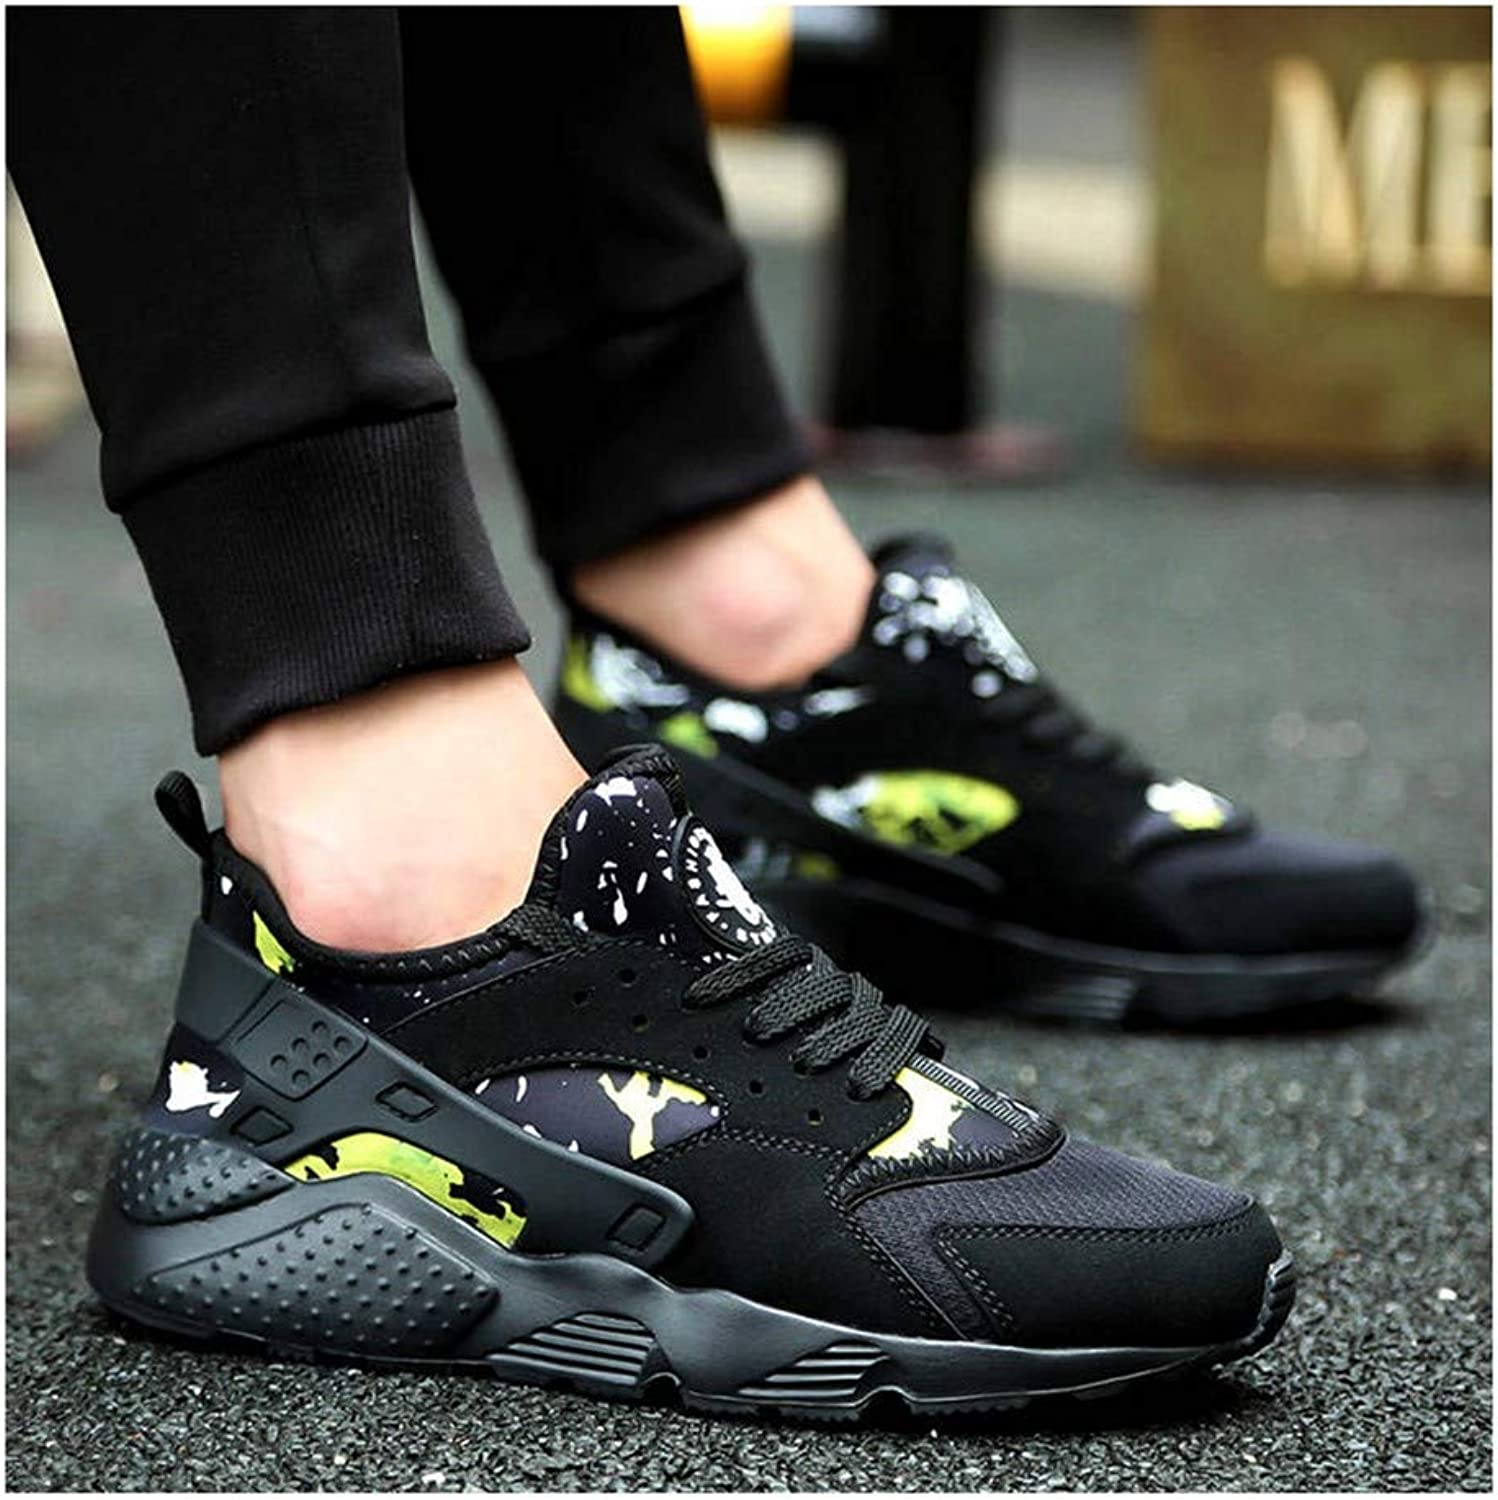 YAYADI shoes shoes Men'S Sneakers Designer Summer Autumn Male White shoes Breathable Casual shoes Jogging Fitness shoes Lightweight Yoga Riding Travel Outdoor Products